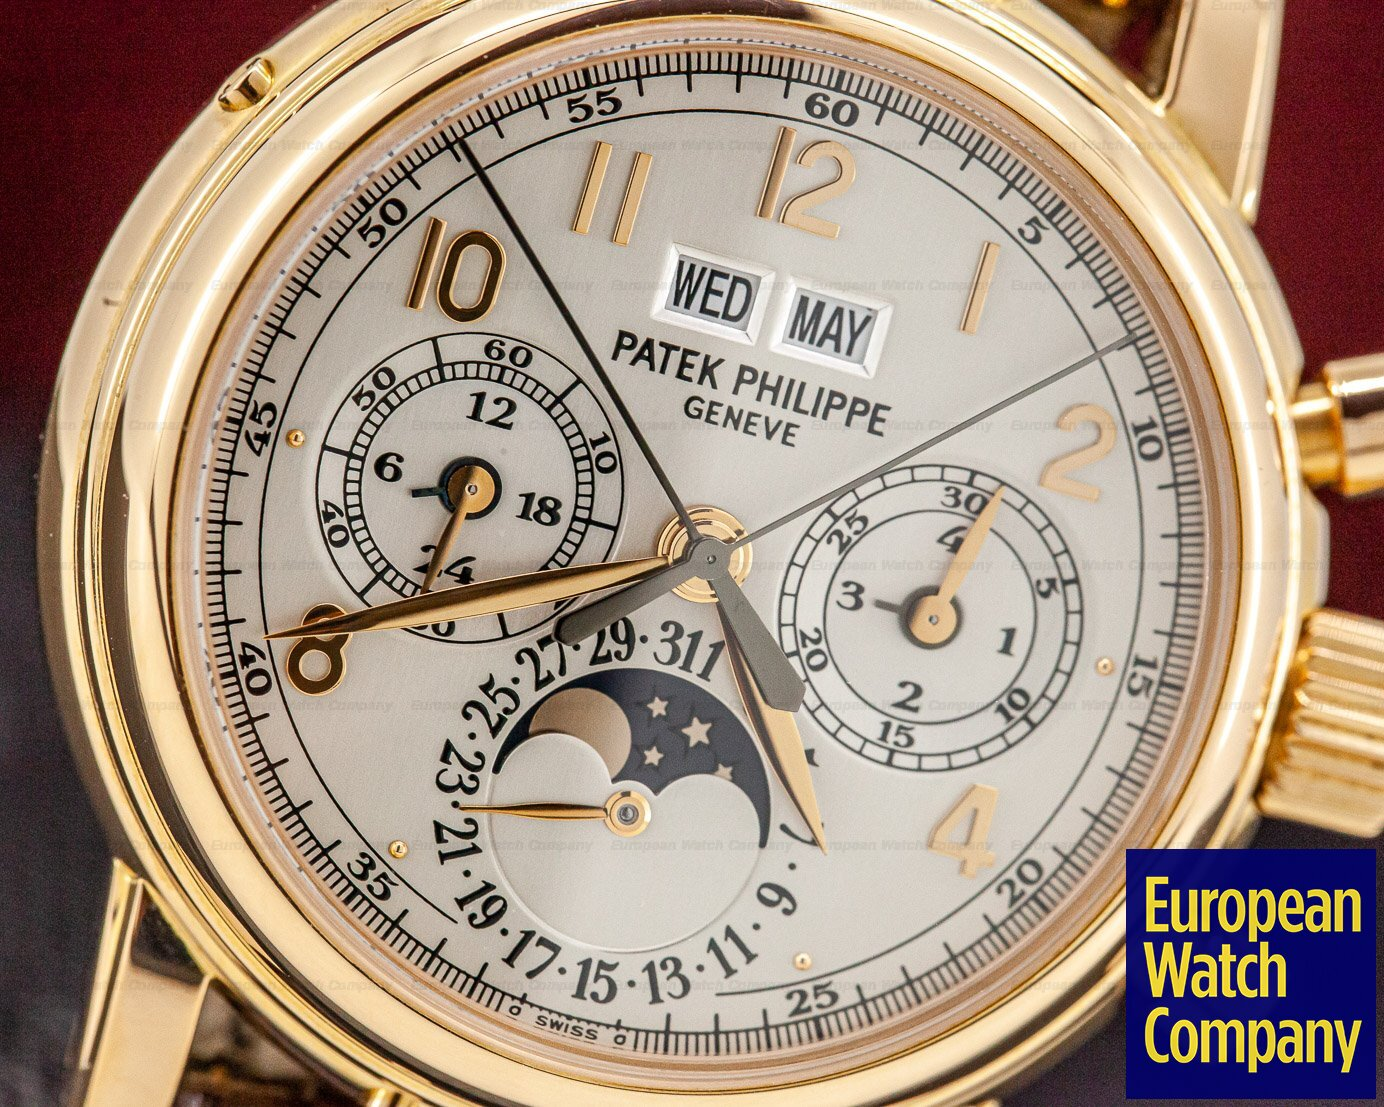 Patek Philippe 5004R-014 Perpetual Calendar Split Second Chronograph 5004 18K Rose Gold